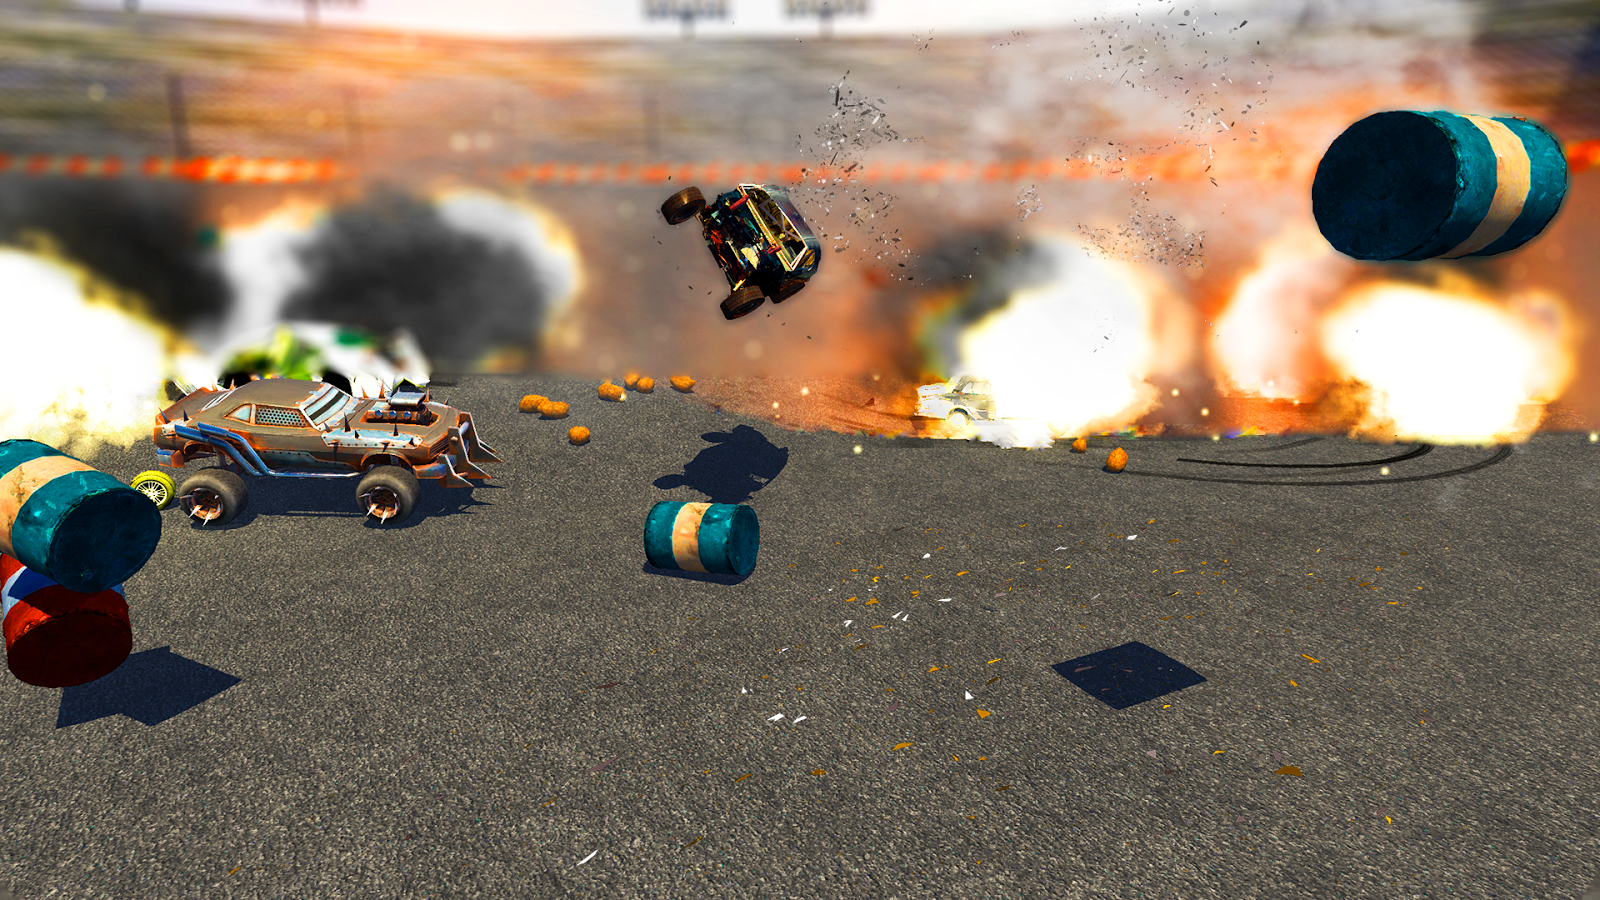 Derby Destruction Simulator  Triche,Derby Destruction Simulator  Astuce,Derby Destruction Simulator  Code,Derby Destruction Simulator  Trucchi,تهكير Derby Destruction Simulator ,Derby Destruction Simulator  trucco